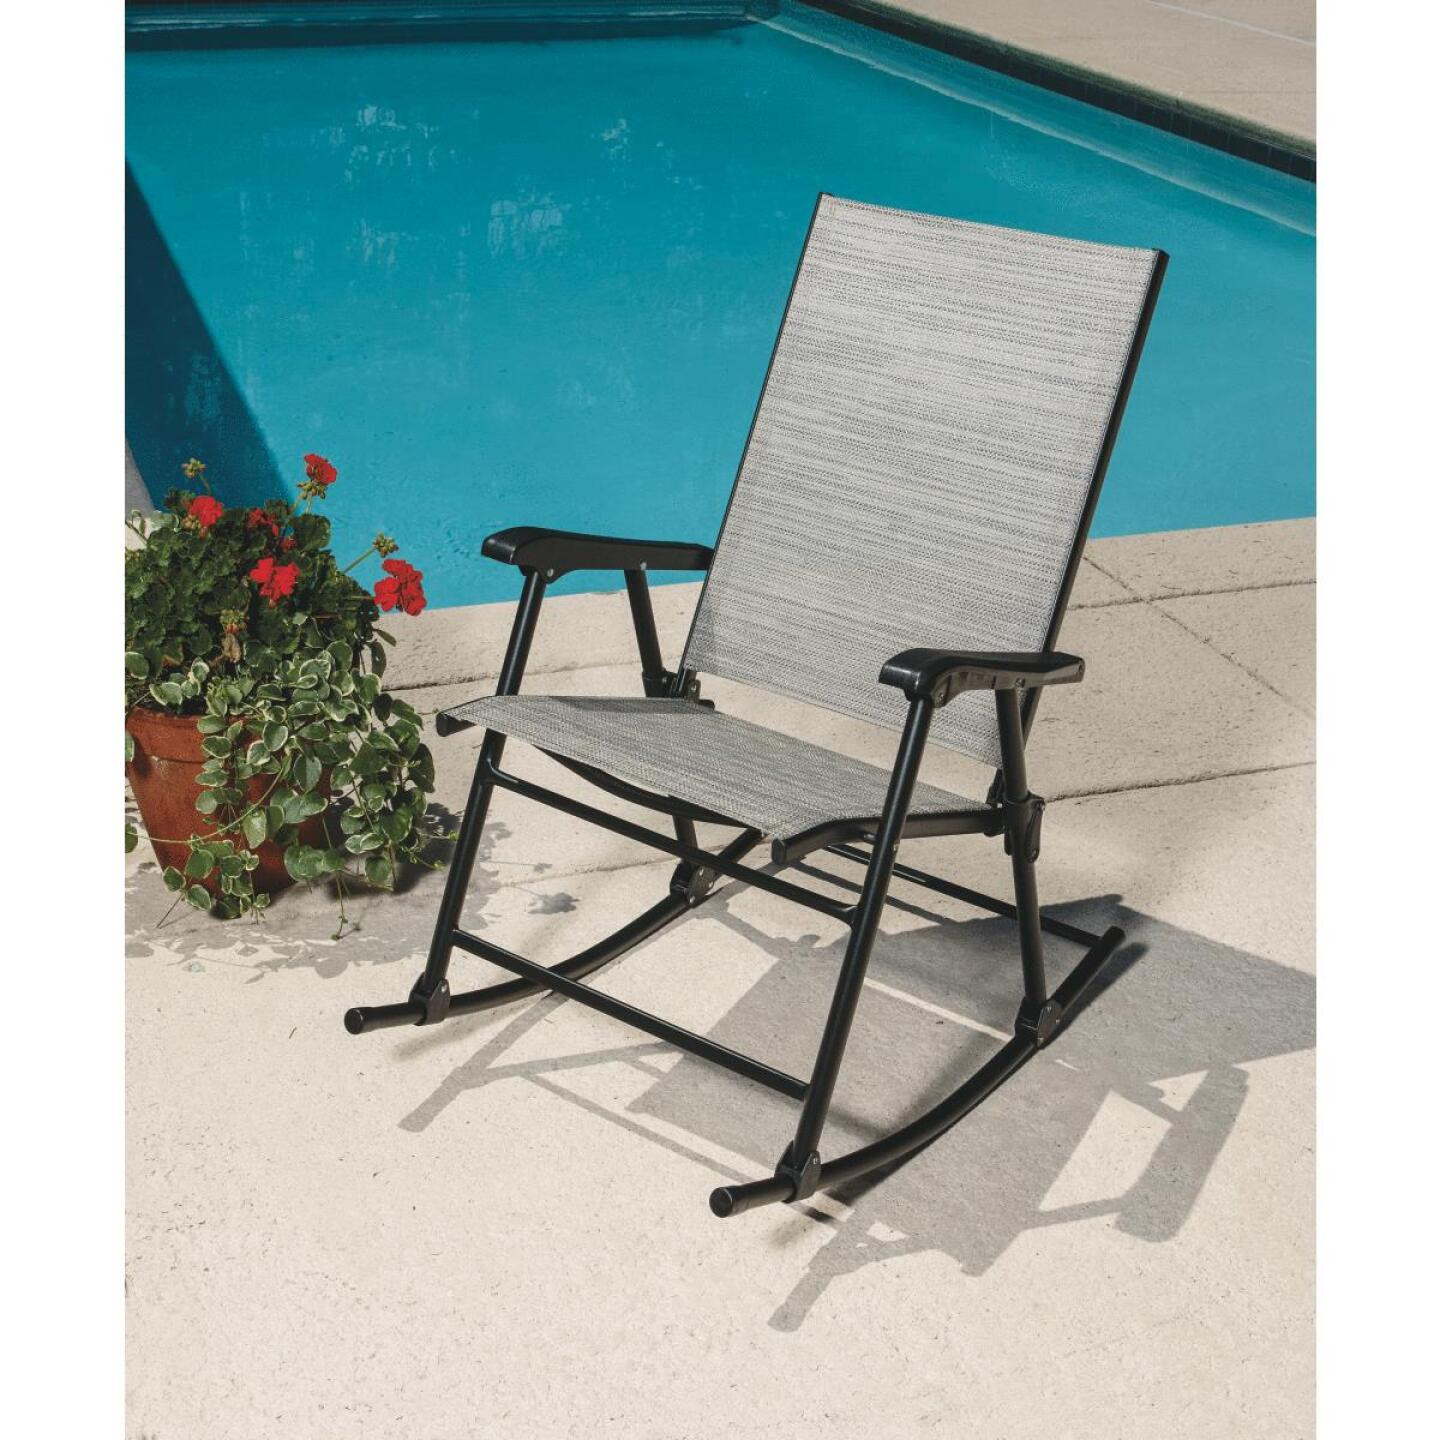 Outdoor Expressions Galveston Black Steel Rocking Chair Image 9